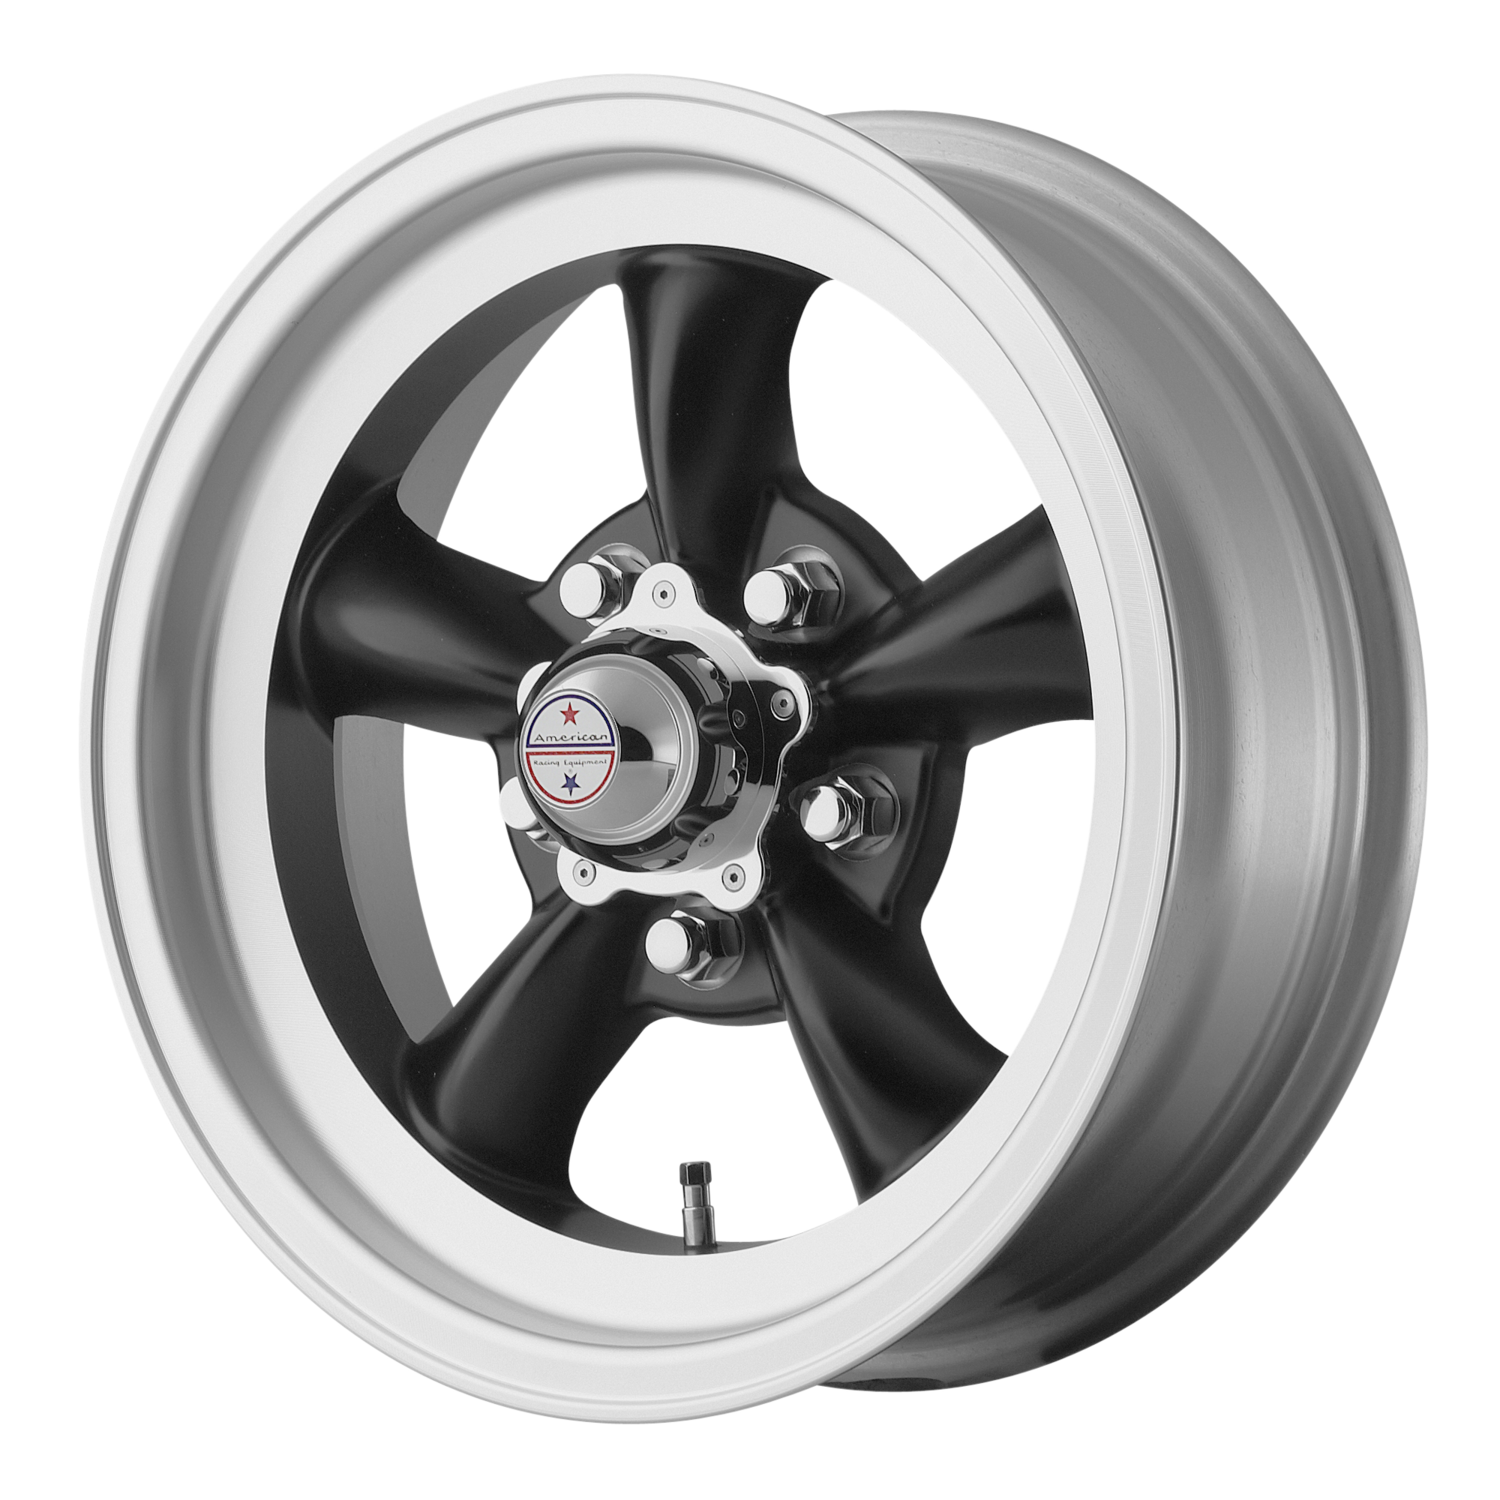 15s SET of 4 VN105 Torq Thrust D gray or black 67-73 Mustang